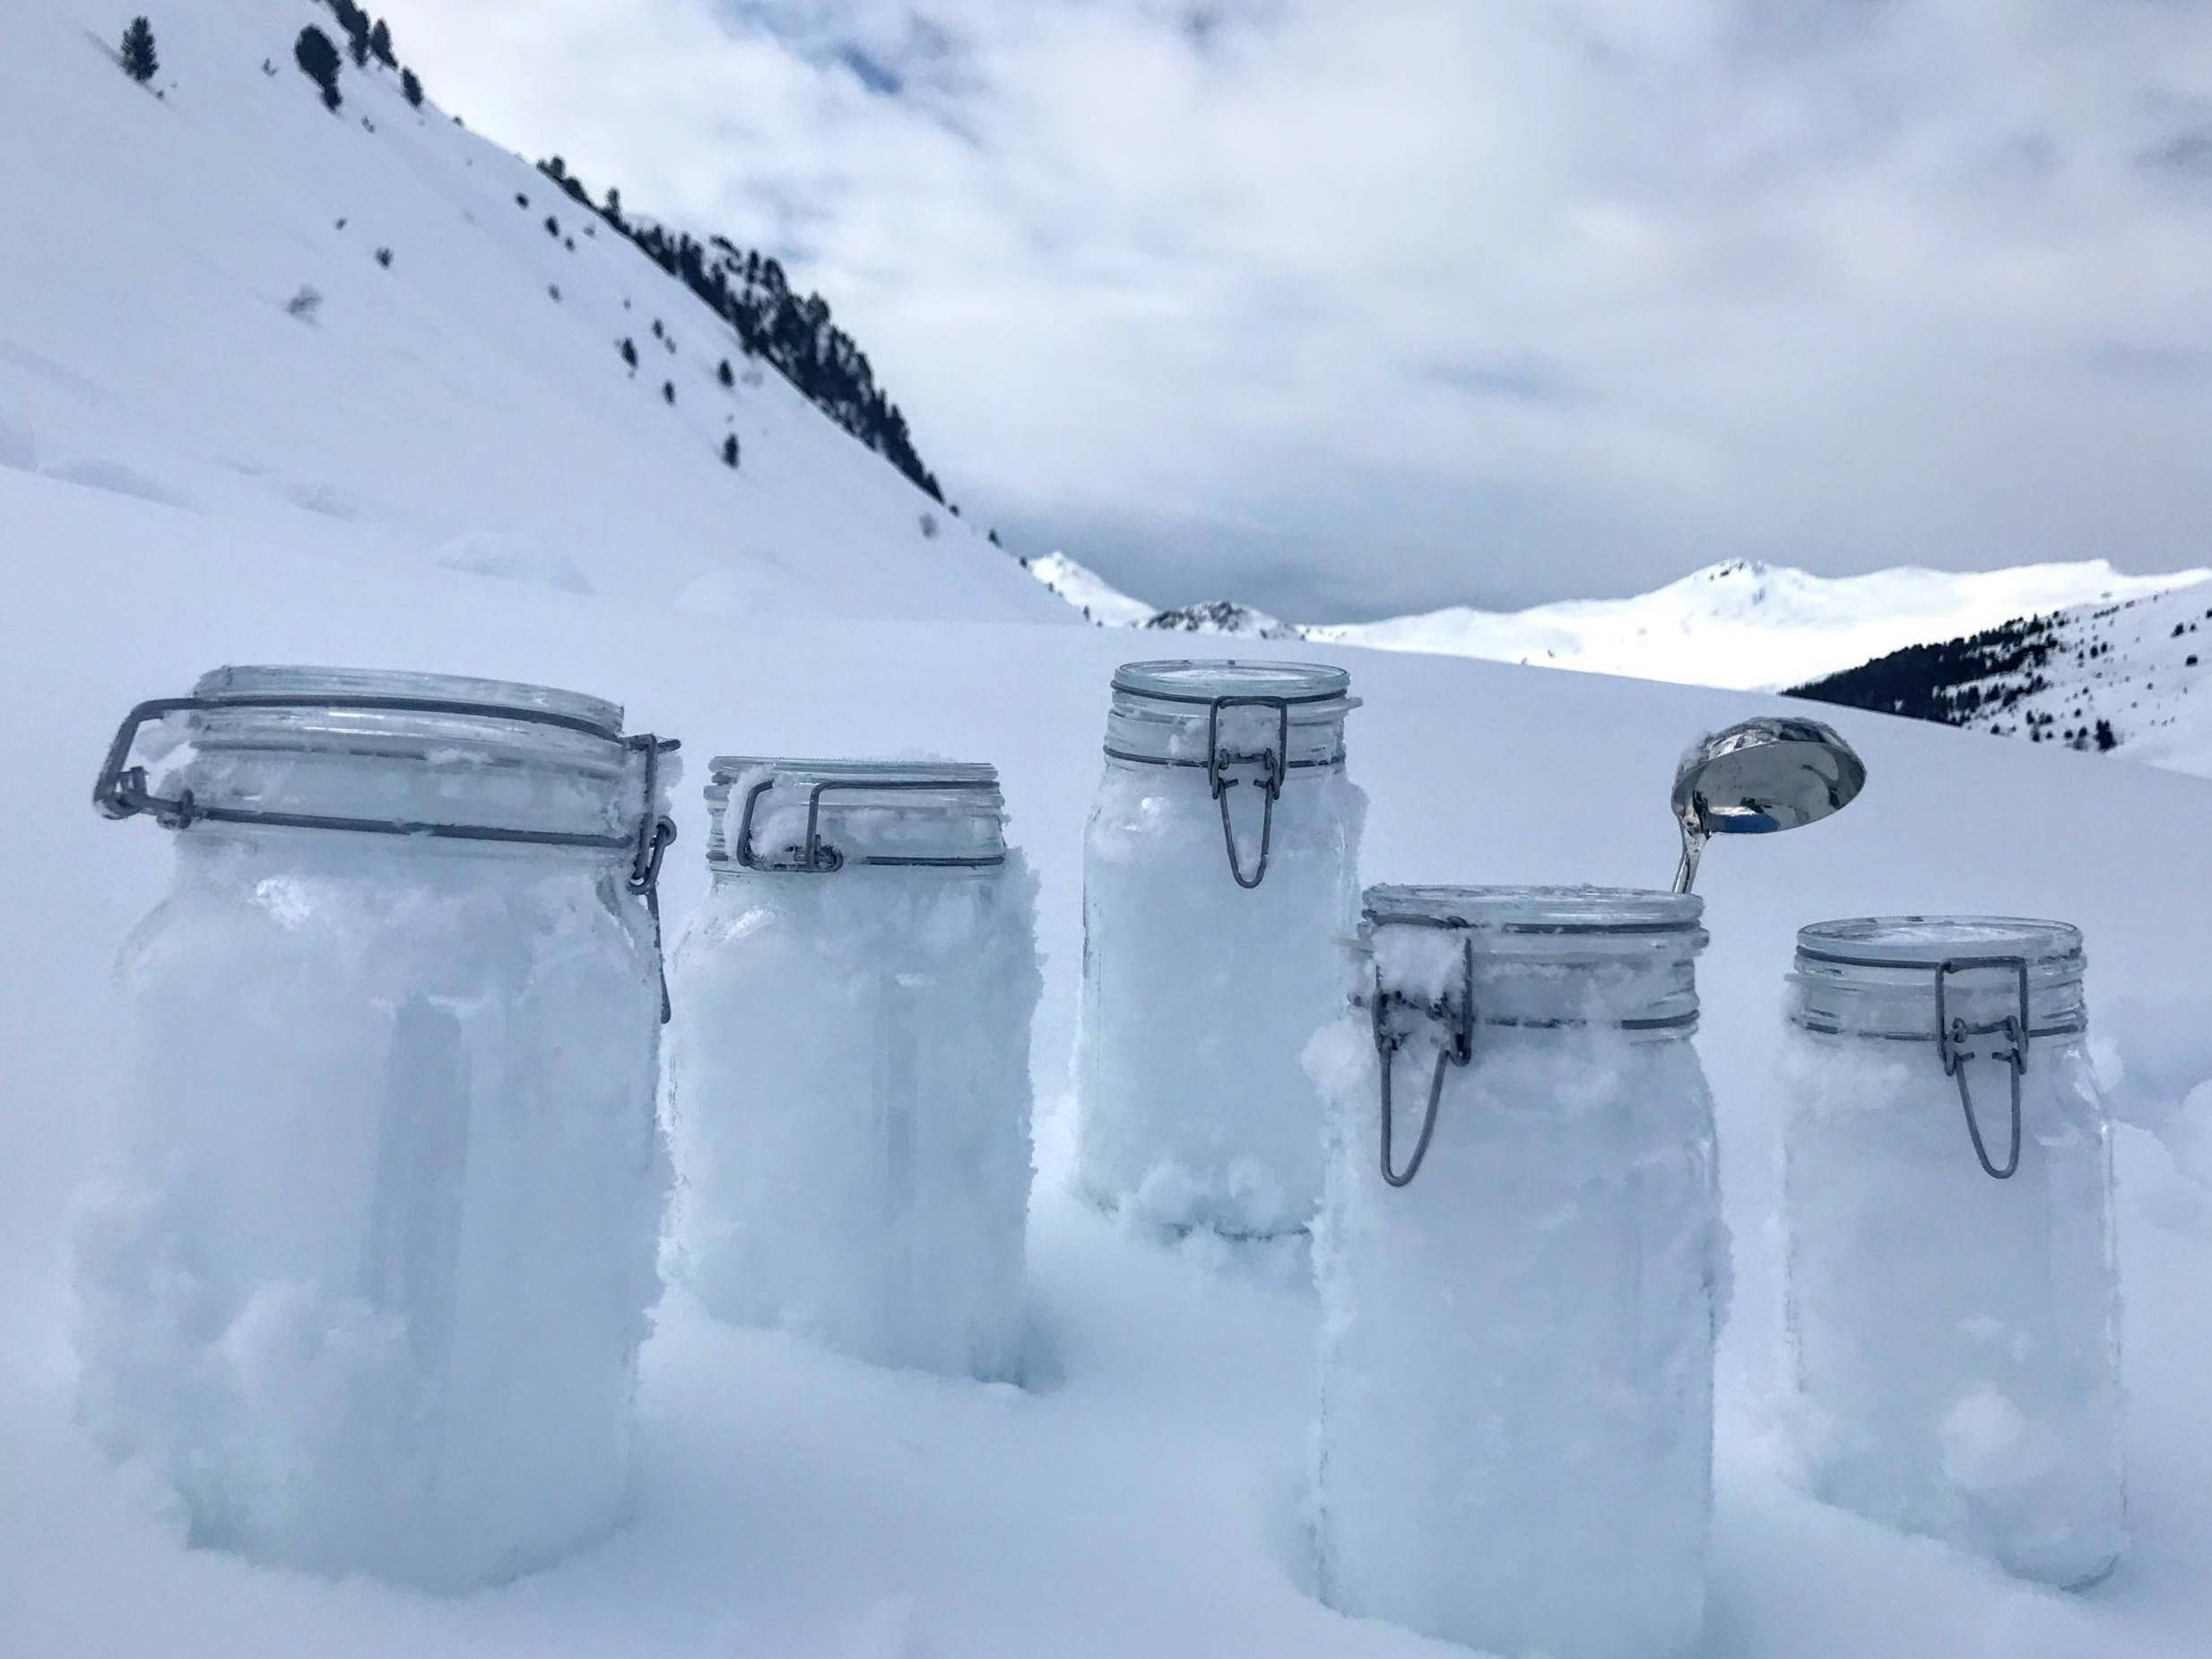 Microplastics discovered in Arctic snow